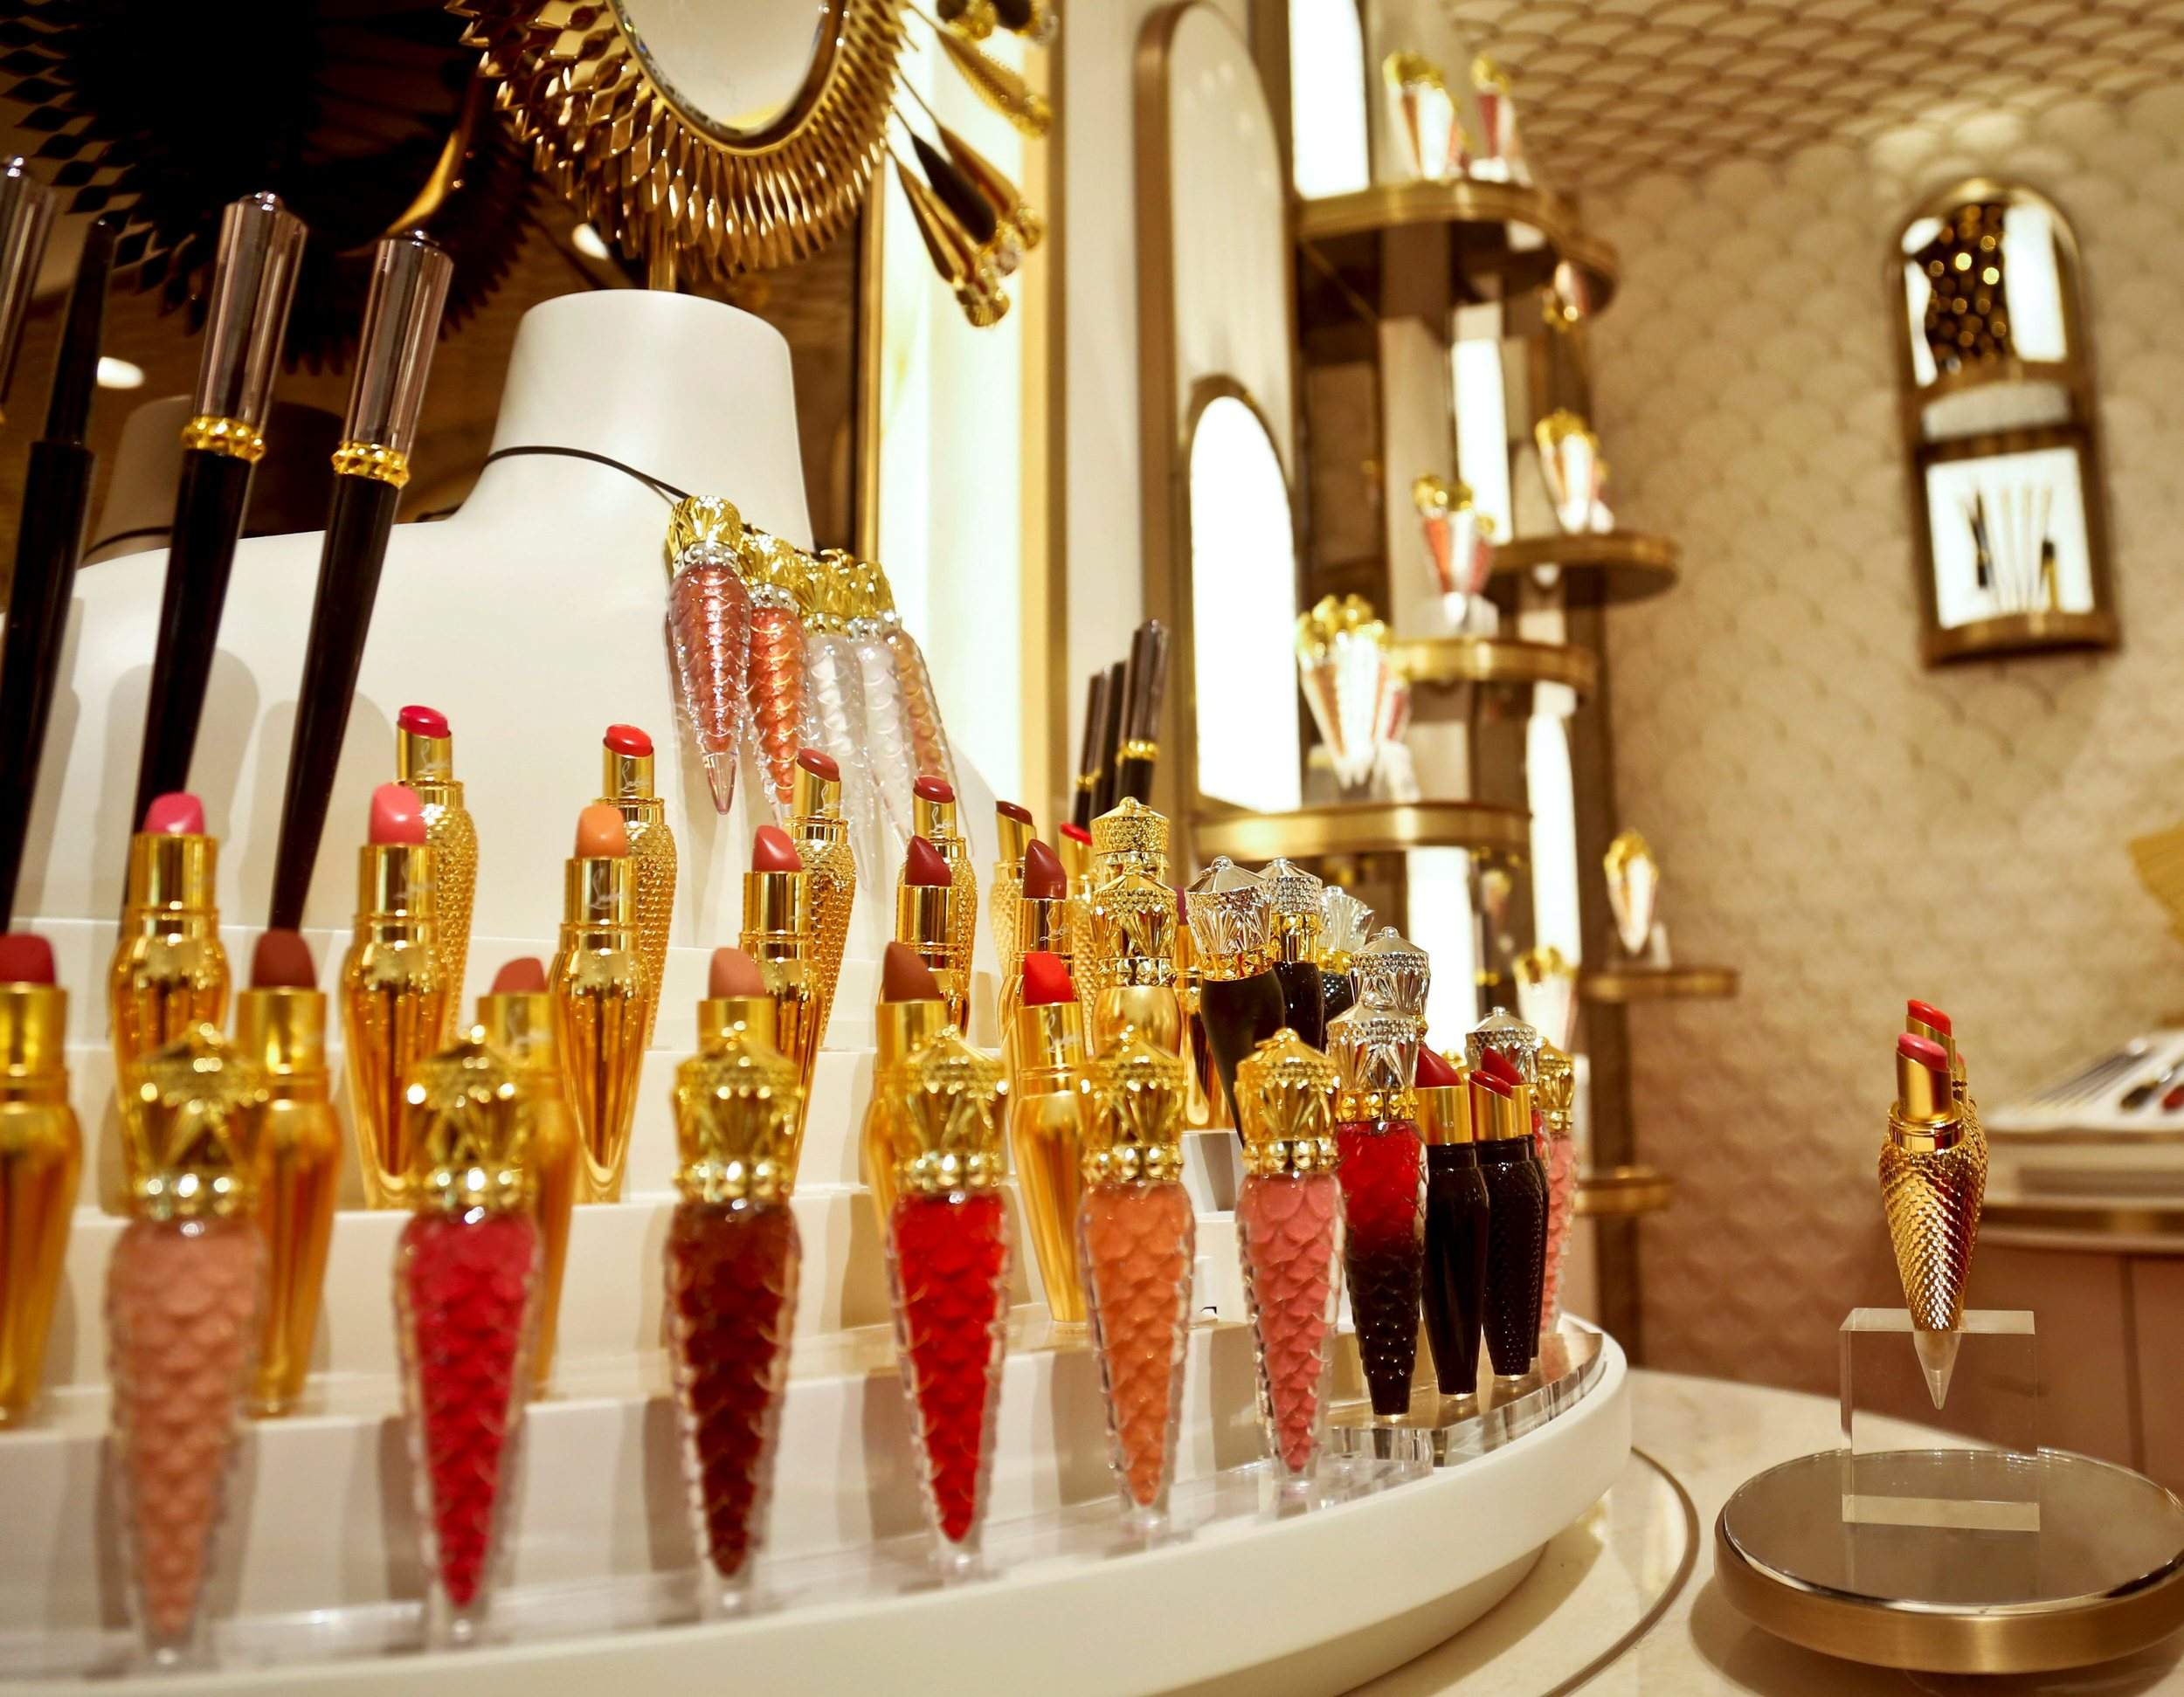 07bf09b1487 Cosmetic products are displayed inside the new Christian Louboutin space at  the revamped second floor devoted to beauty at Saks Fifth Avenue in New  York on ...